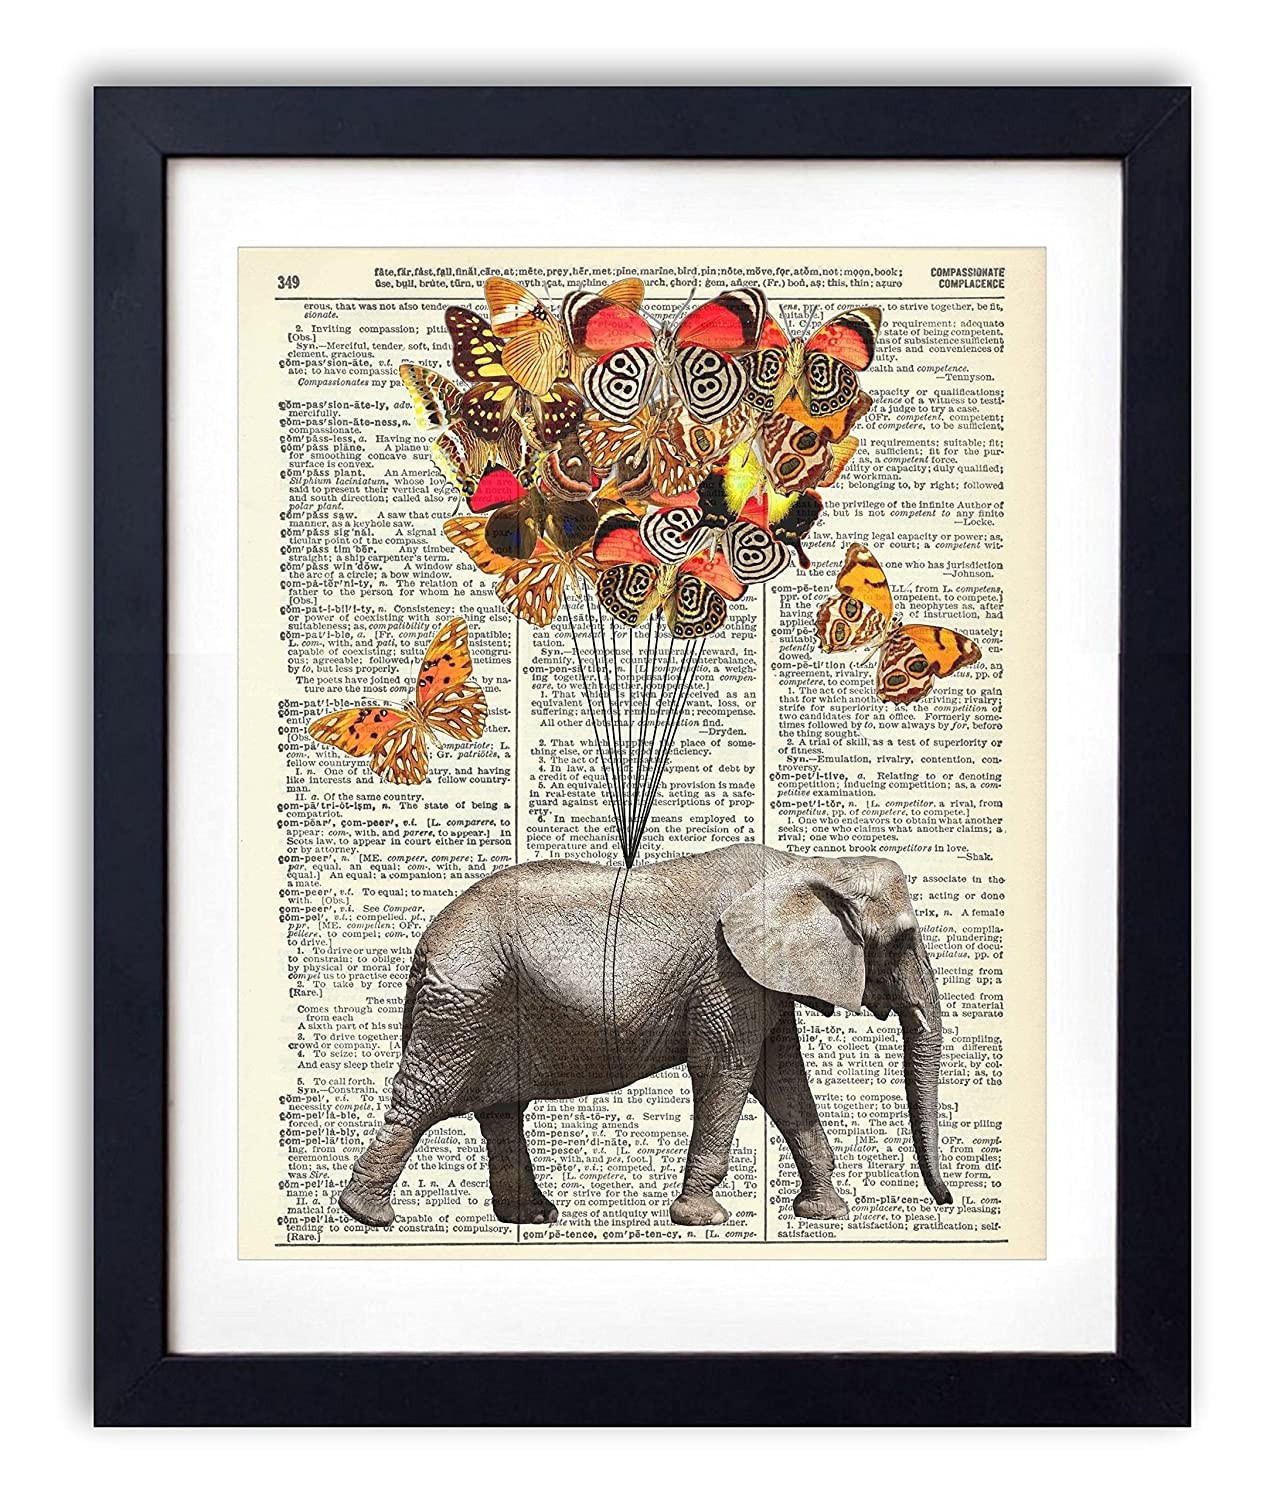 Elephant With Butterflies #1 Upcycled Wall Art Vintage Dictionary Art Print 8x10 inches / 20.32 x 25.4 cm Unframed